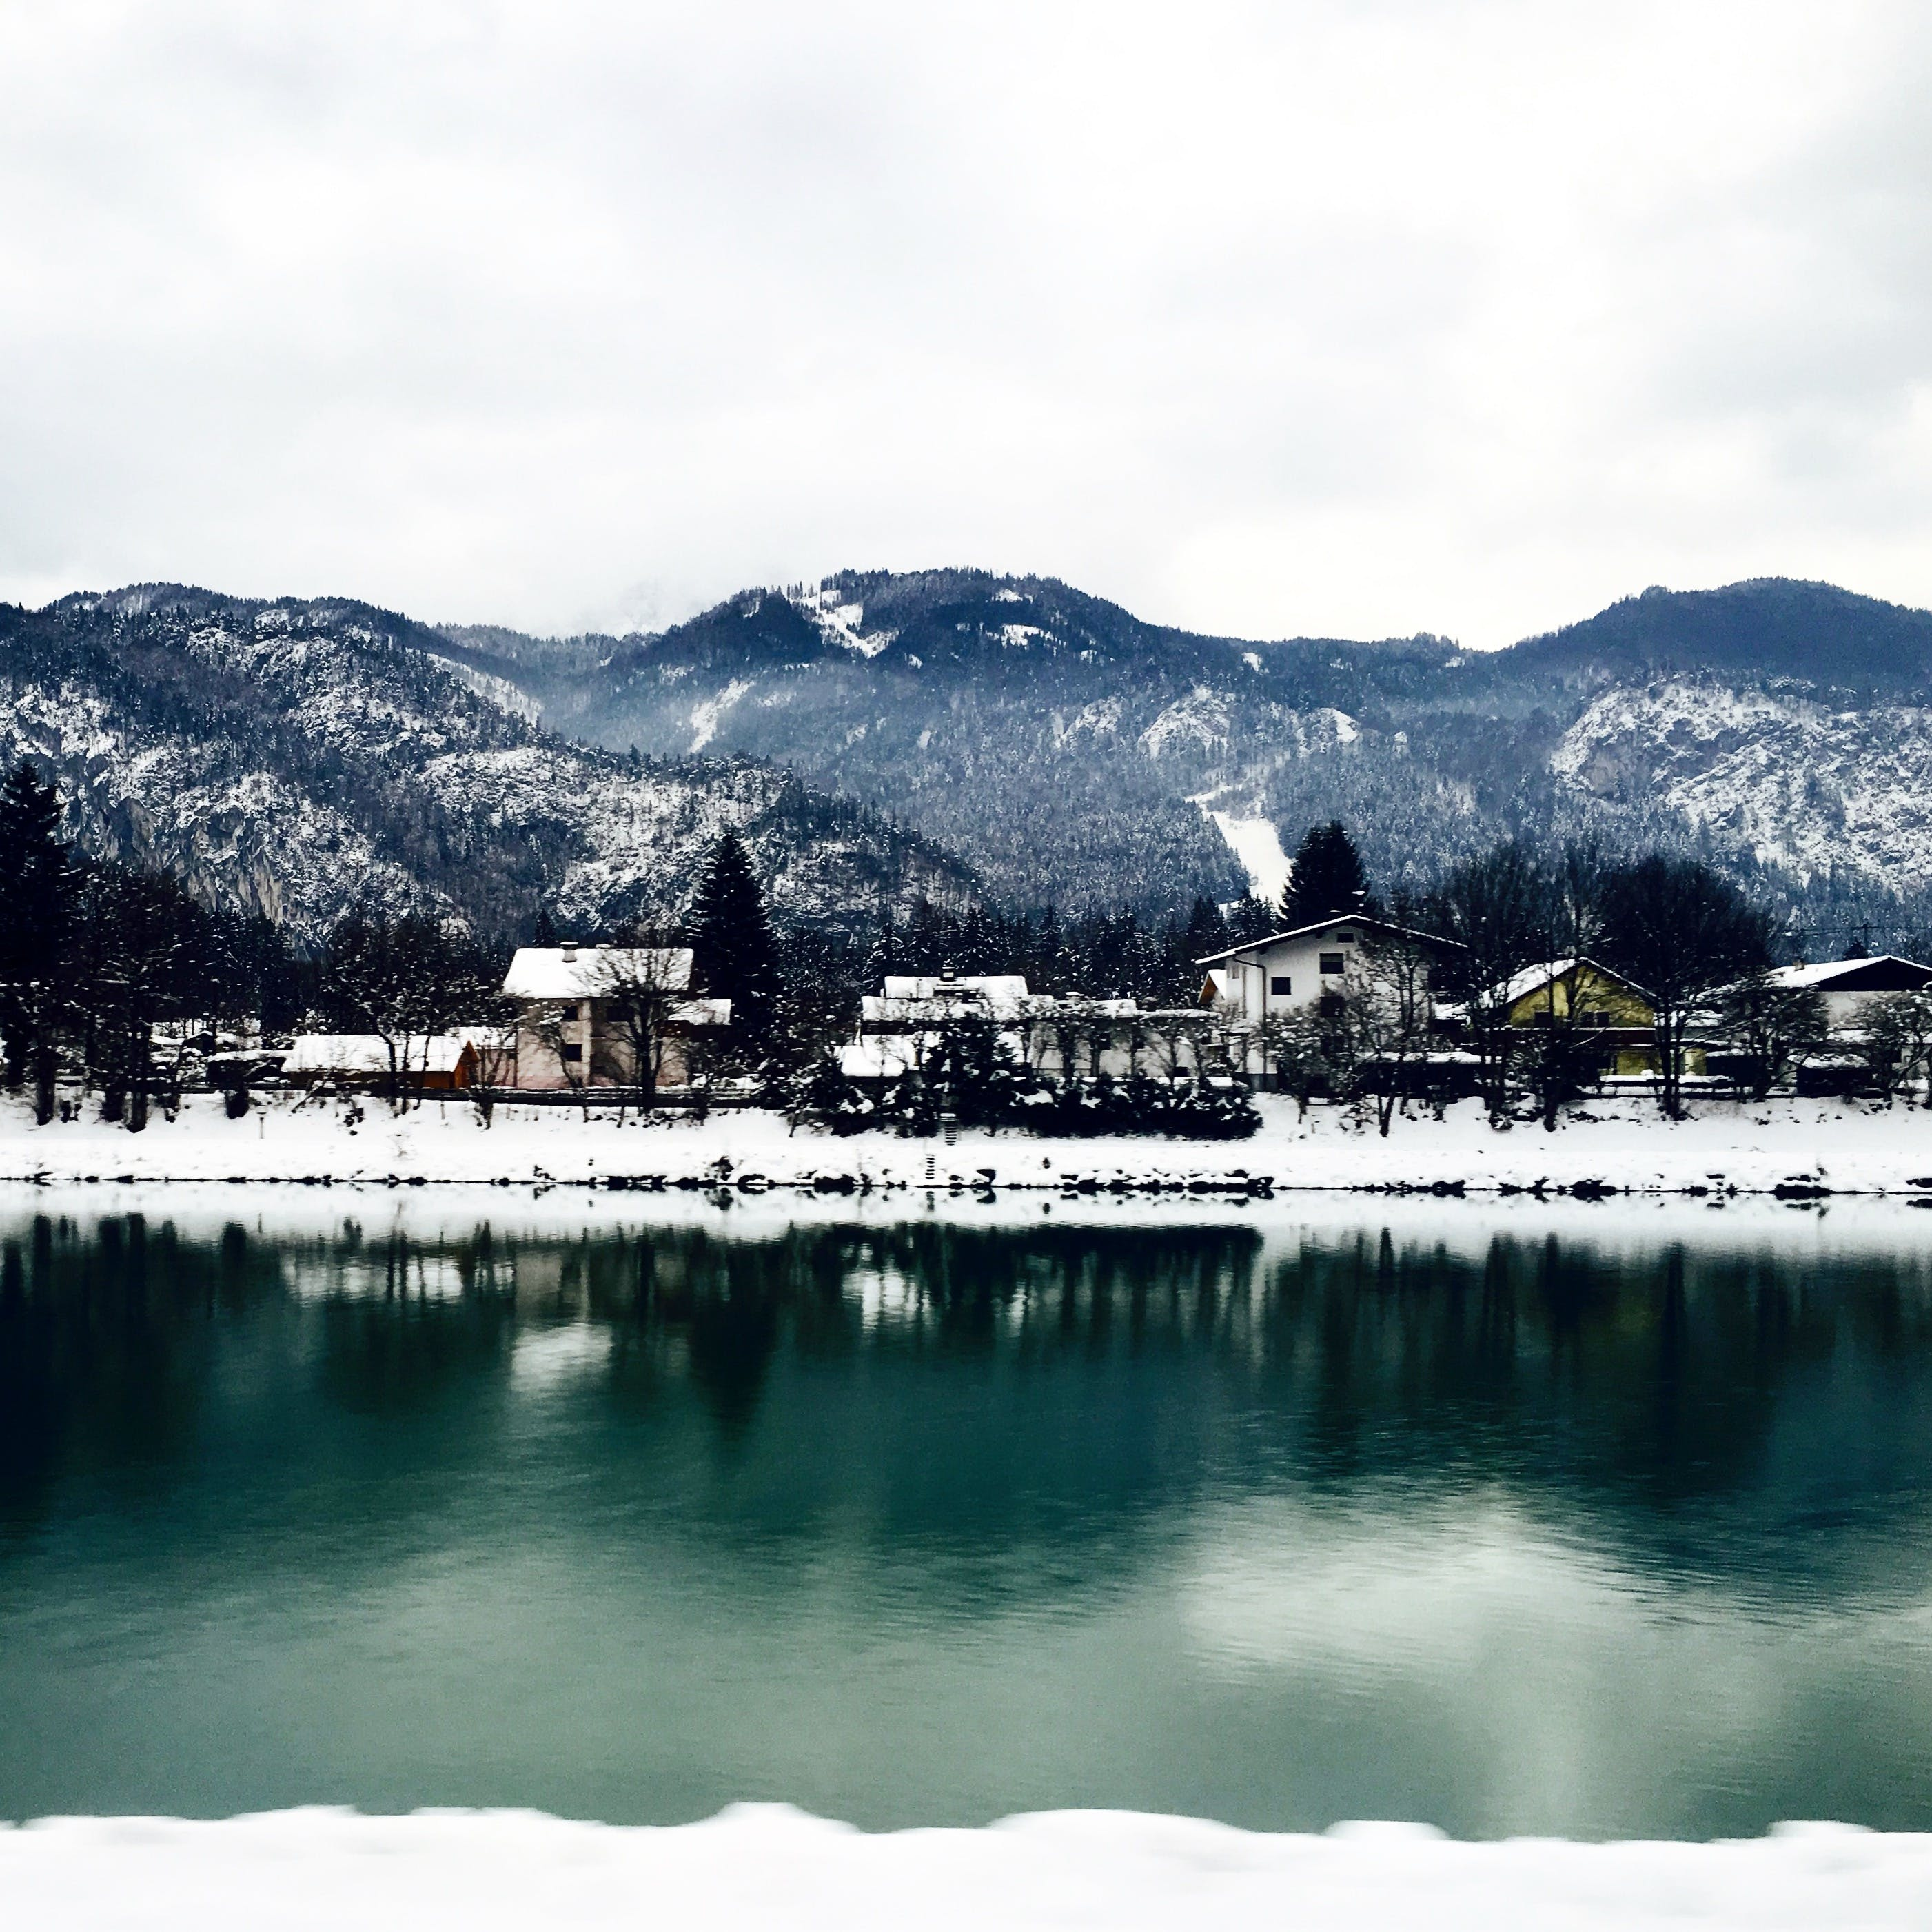 White Houses in Front of Mountains Under White Cloudy Sky